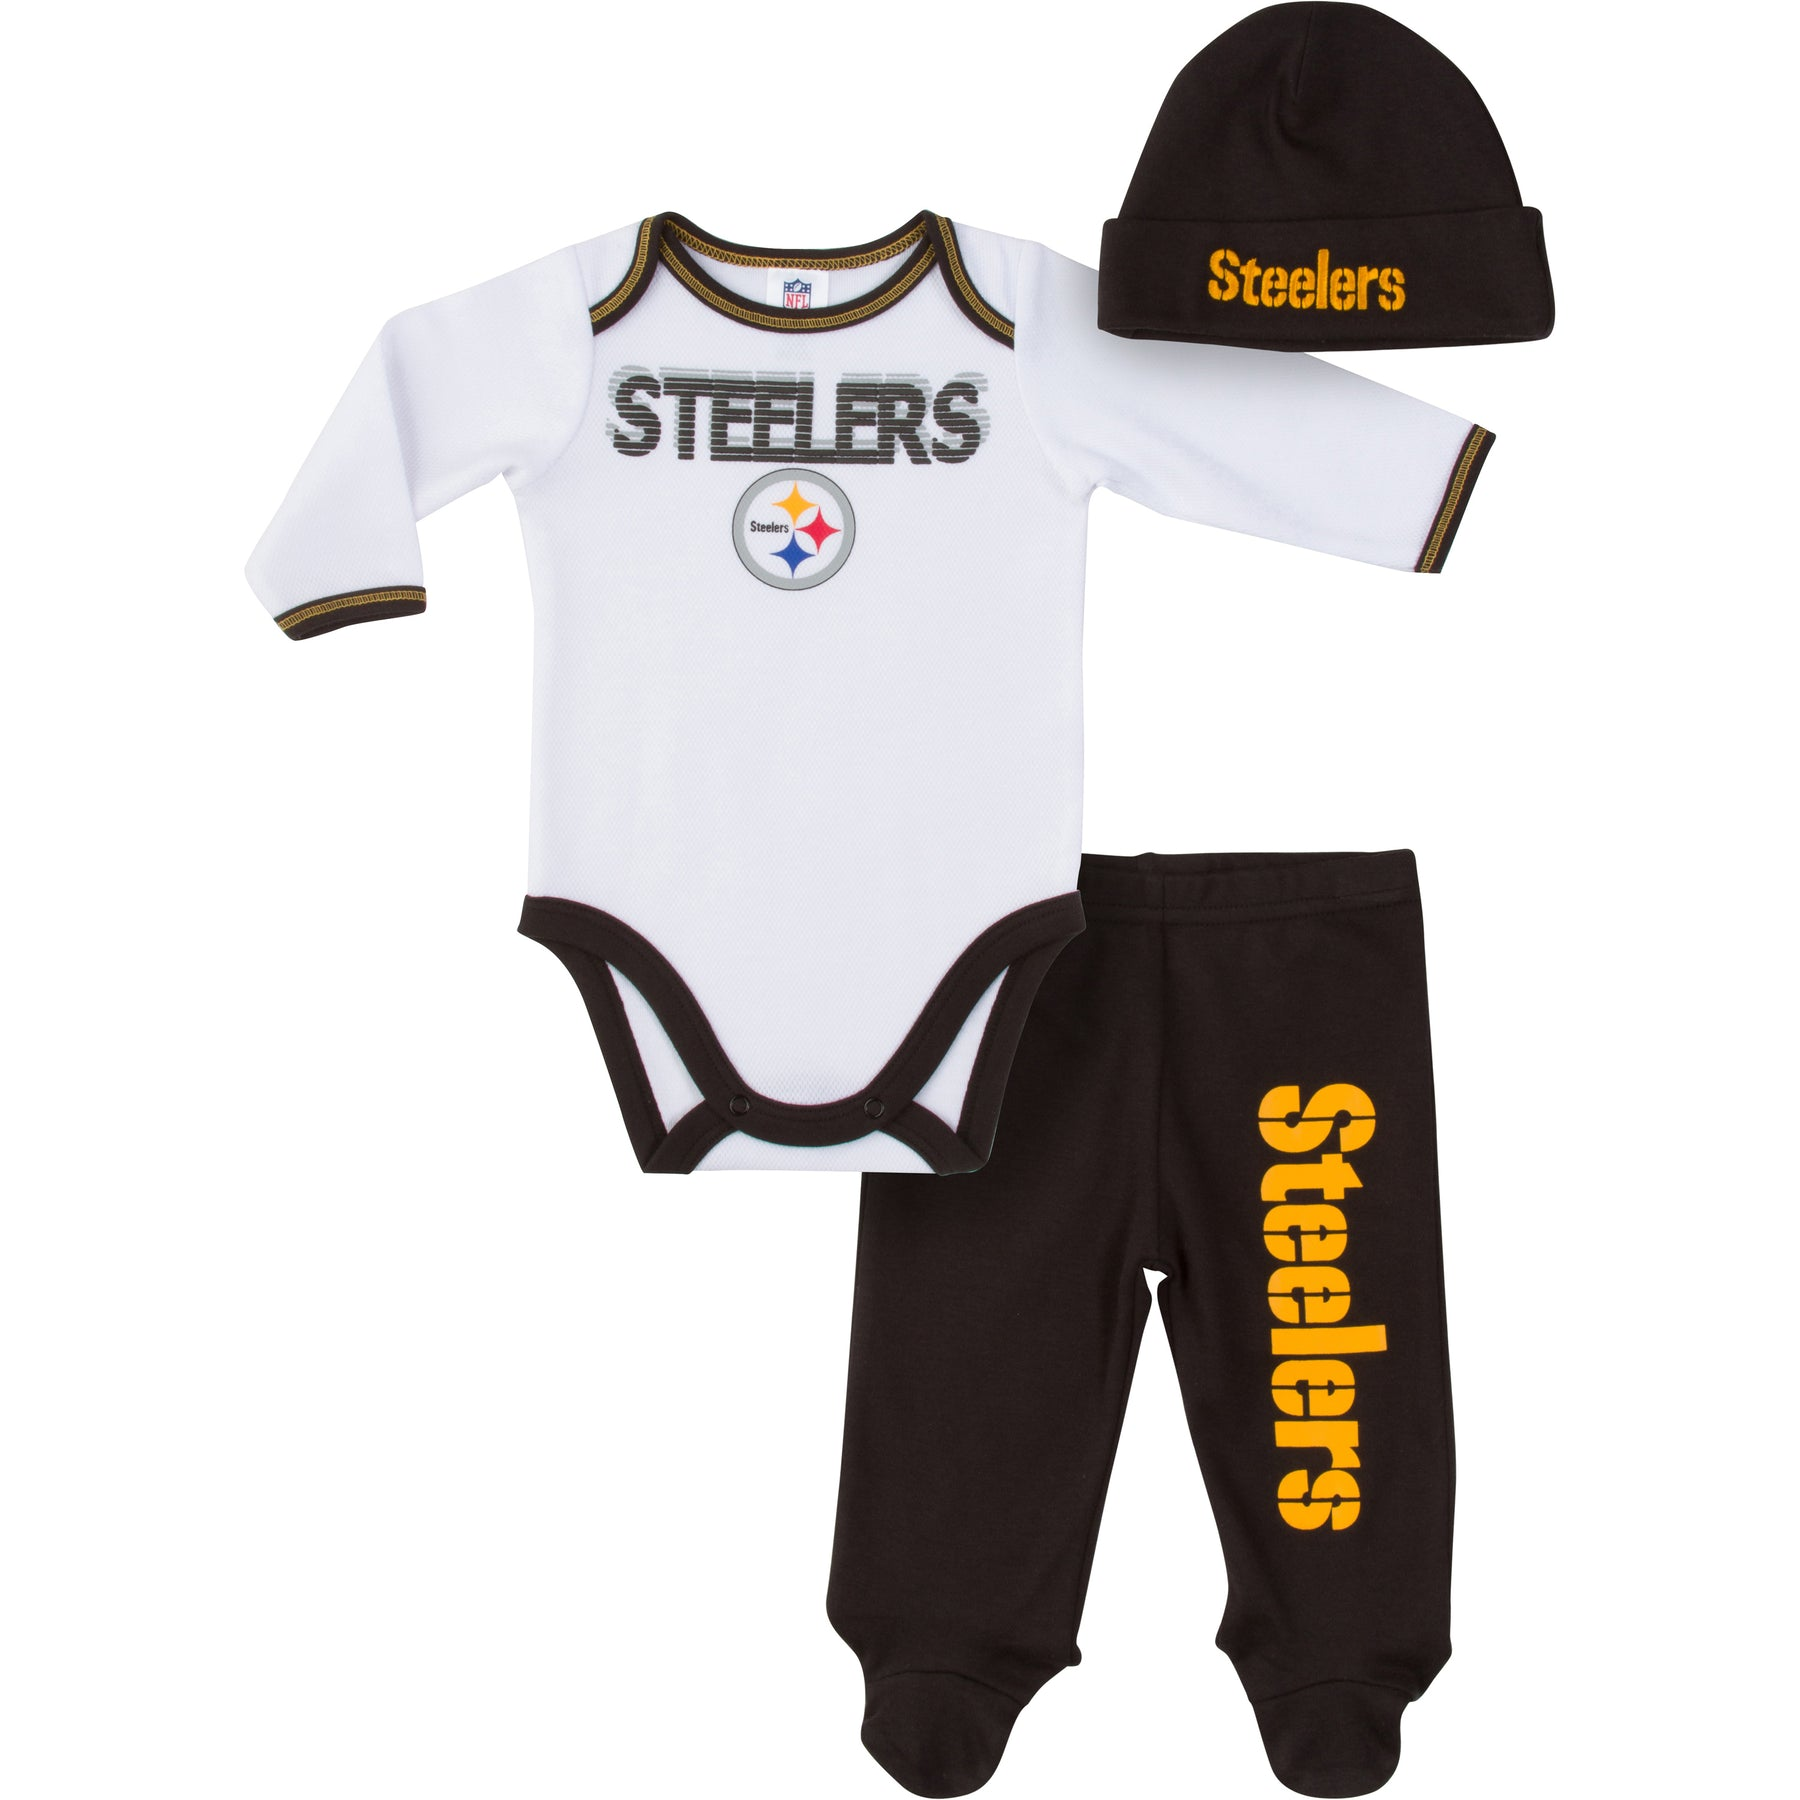 Steelers Baby Boy Onesie 220409a0b